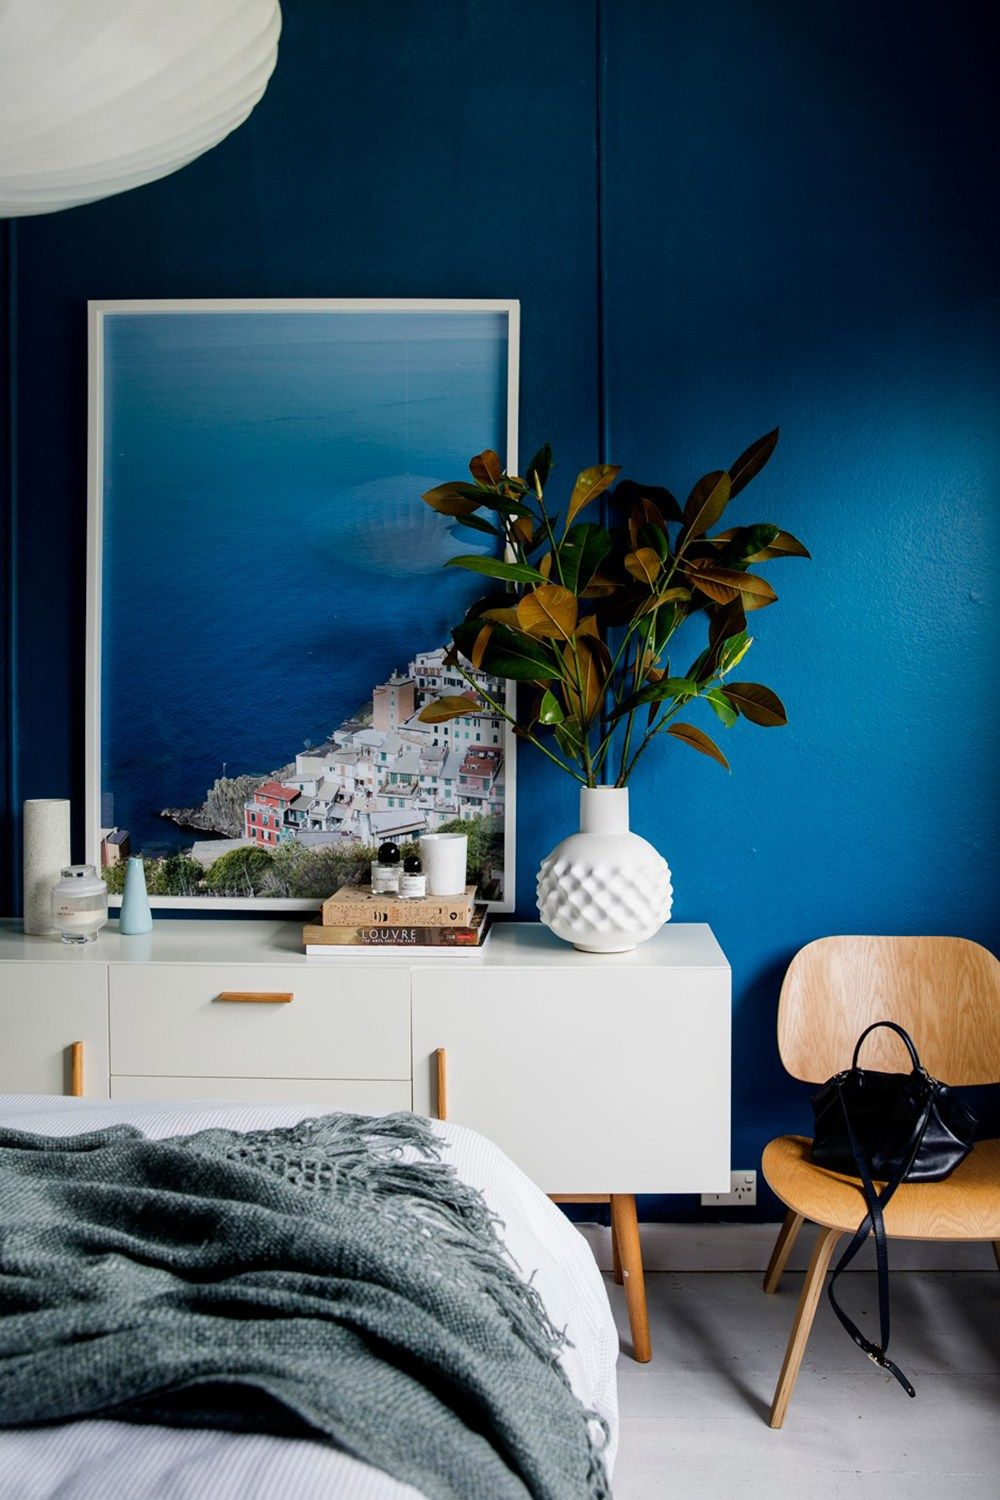 35 Ideas For Blue Wall Colour In Home Decoration Aliz S Wonderland Blue Wall Colors Blue Bedroom Walls Home Decor